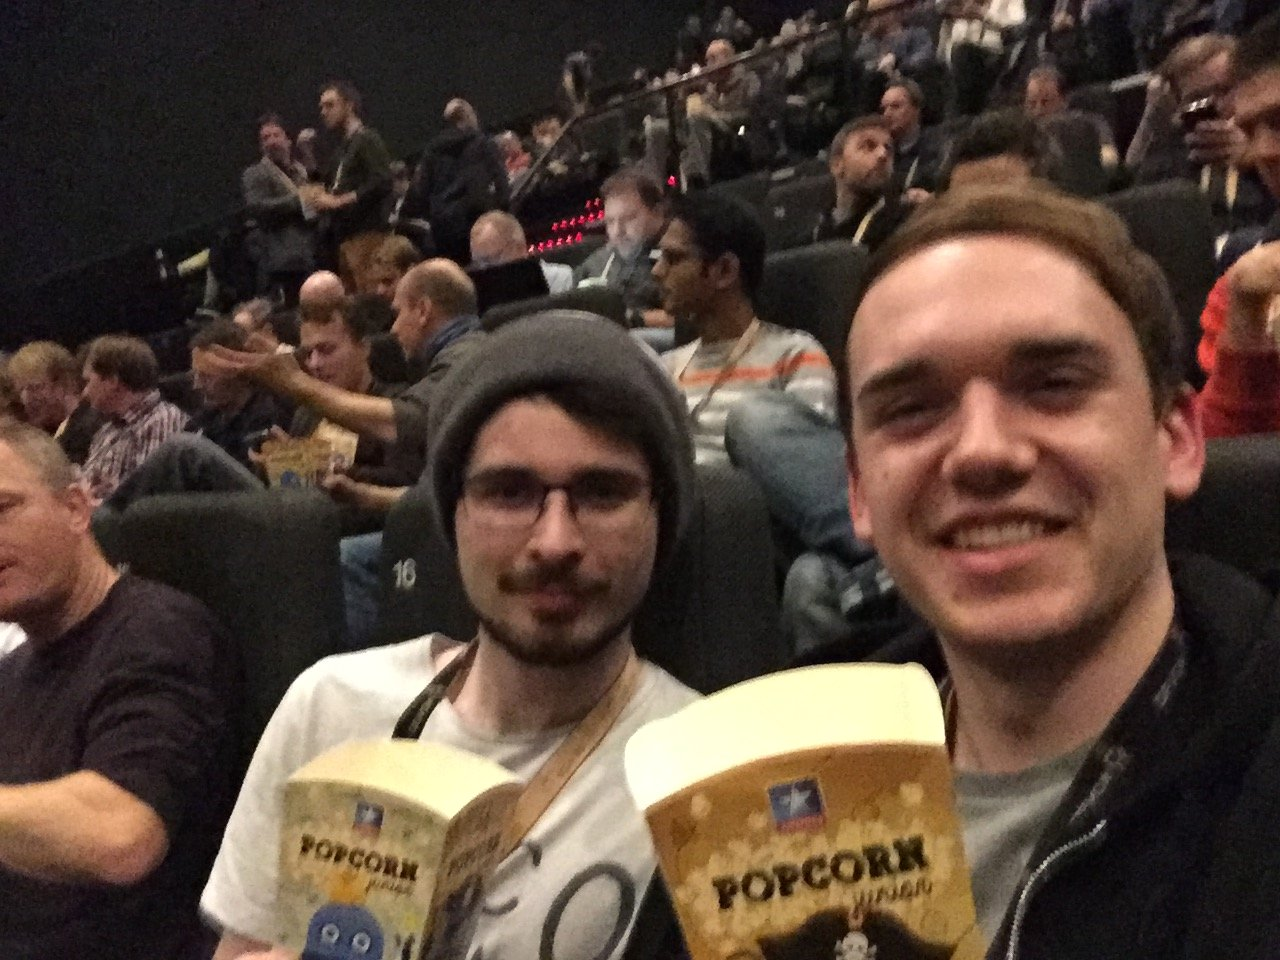 Bladerunner 2049 Screening